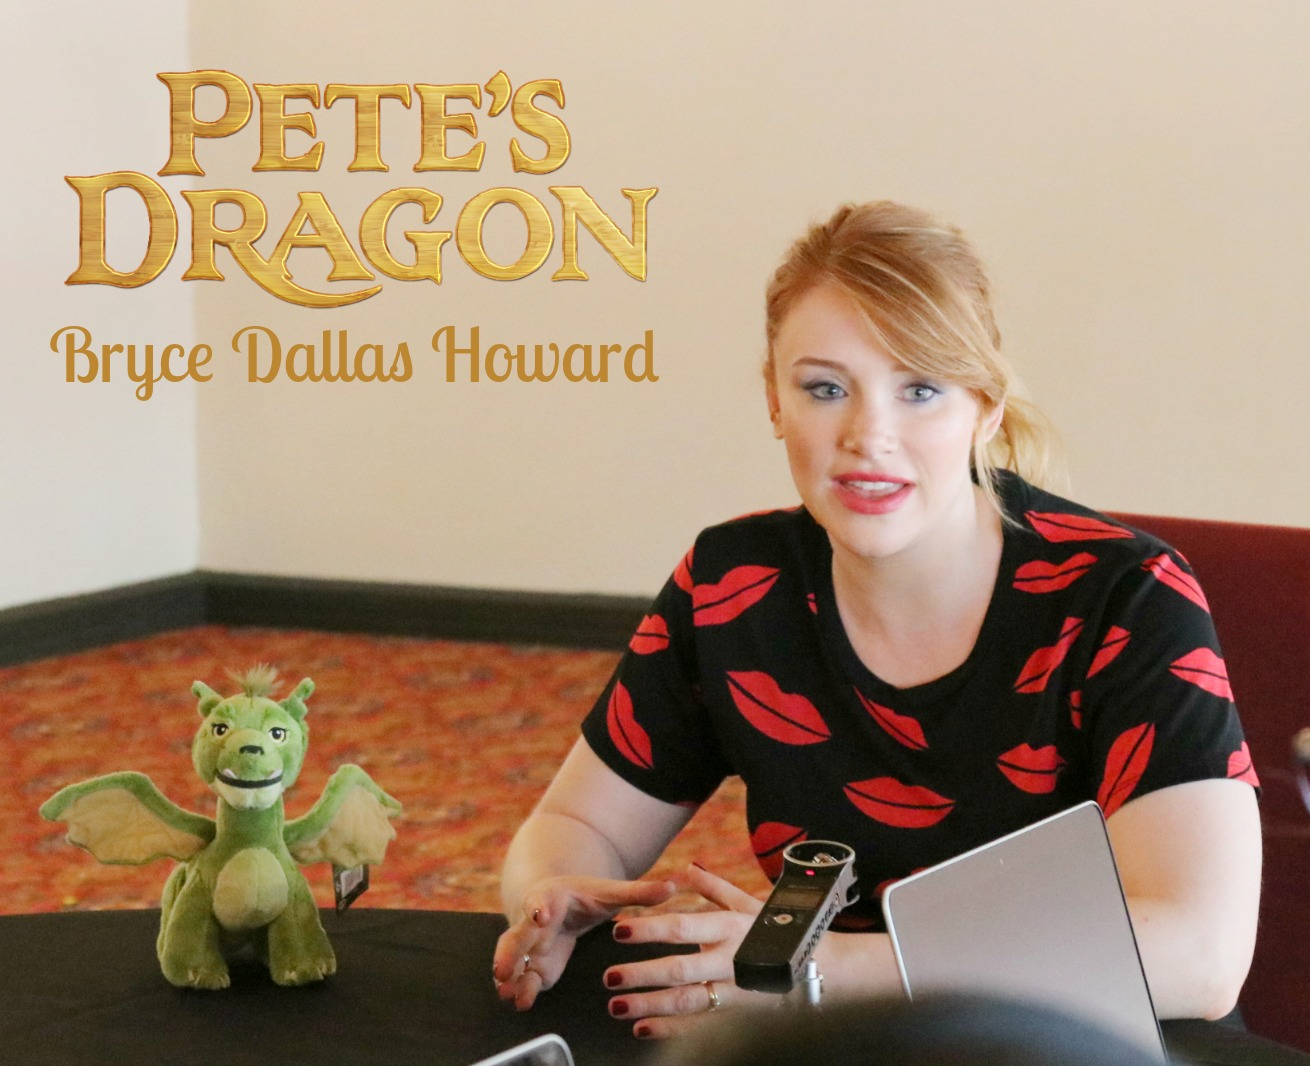 Pete's Dragon Bryce Dallas Howard talks family and her favorite Disney movie of all time!